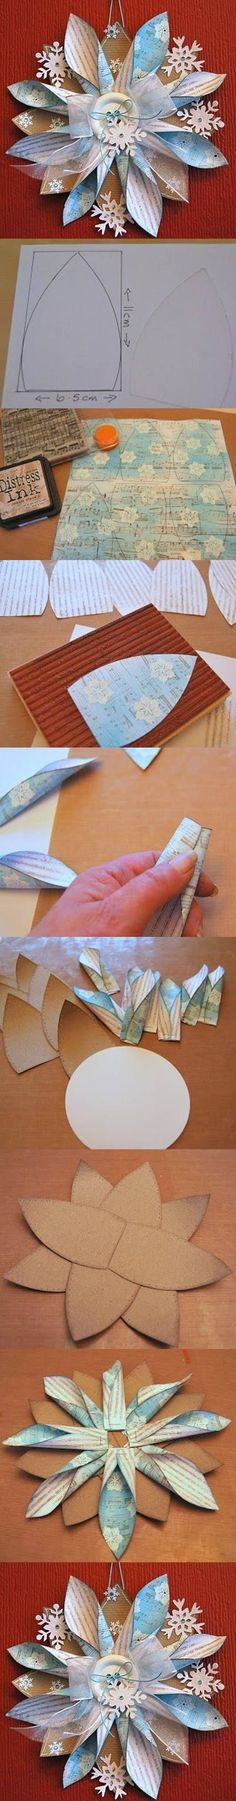 "<input+type=""hidden""+value=""""+data-frizzlyPostContainer=""""+data-frizzlyPostUrl=""http://www.usefuldiy.com/diy-paper-flower-ornaments/""+data-frizzlyPostTitle=""DIY+Paper+Flower+Ornaments""+data-frizzlyHoverContainer=""""><p>>>>+Craft+Tutorials+More+Free+Instructions+Free+Tutorials+More+Craft+Tutorials</p>:"